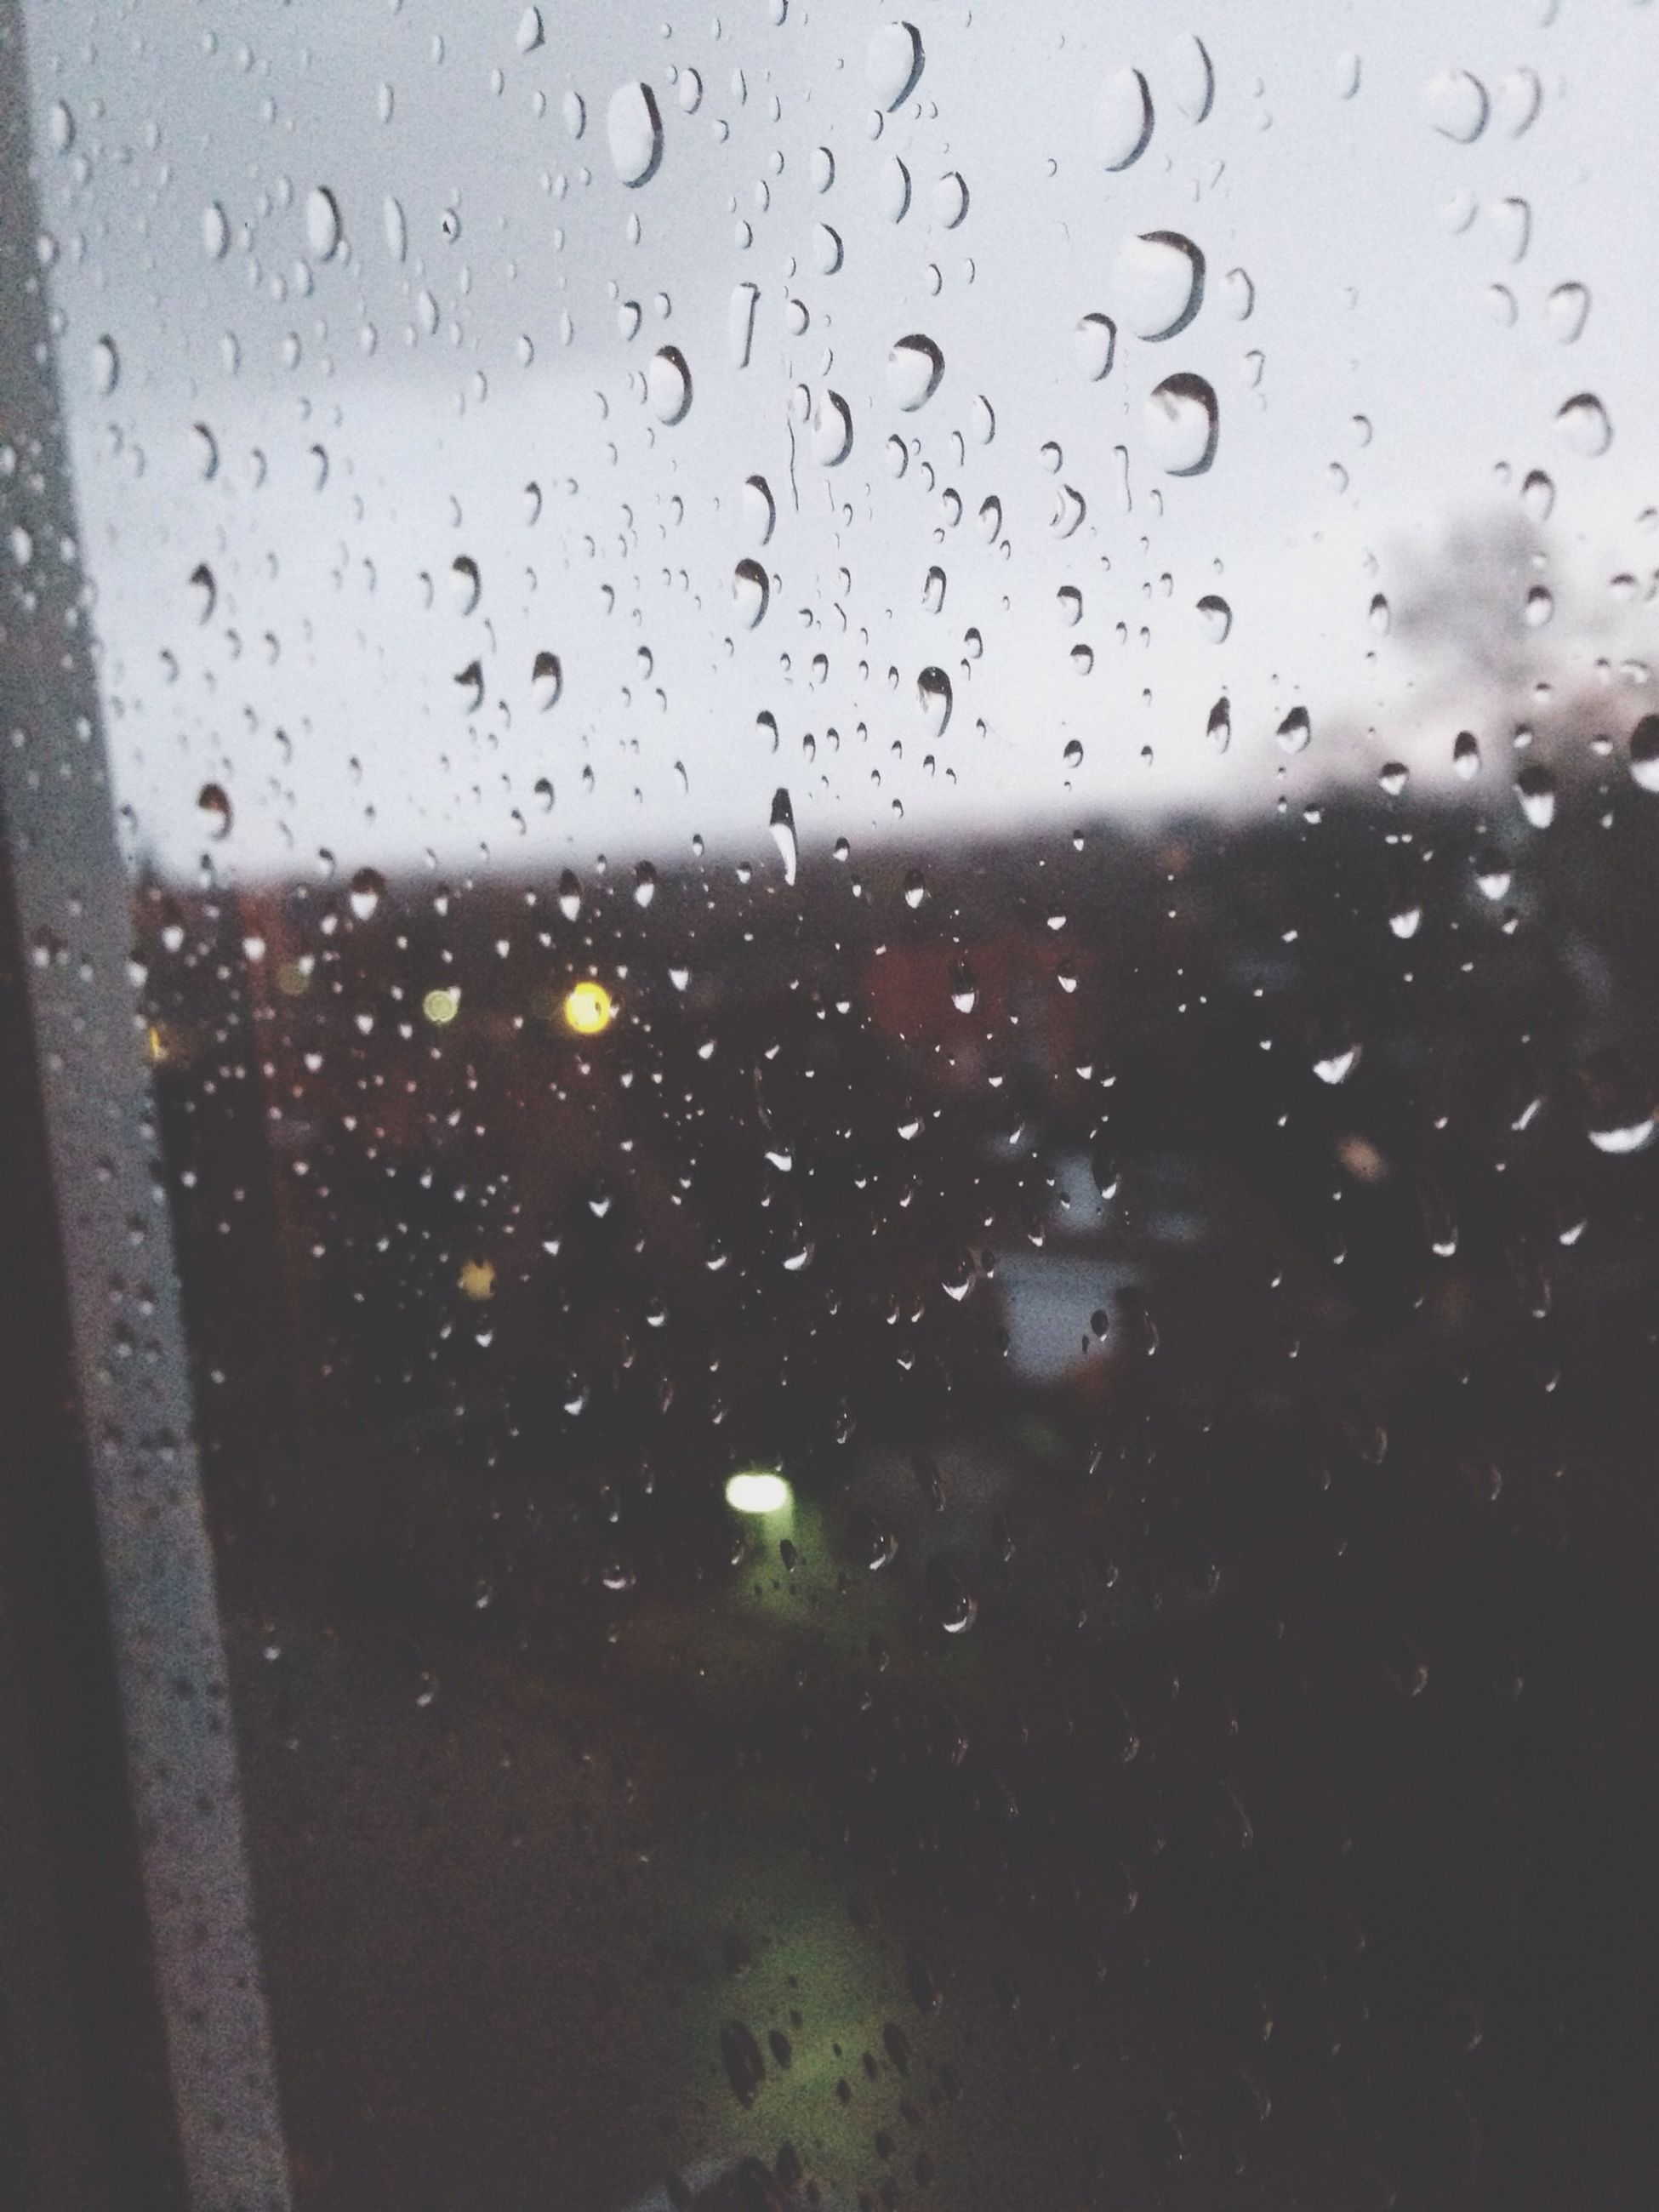 window, drop, transparent, indoors, wet, glass - material, rain, weather, water, raindrop, sky, glass, backgrounds, full frame, season, no people, dusk, nature, close-up, built structure